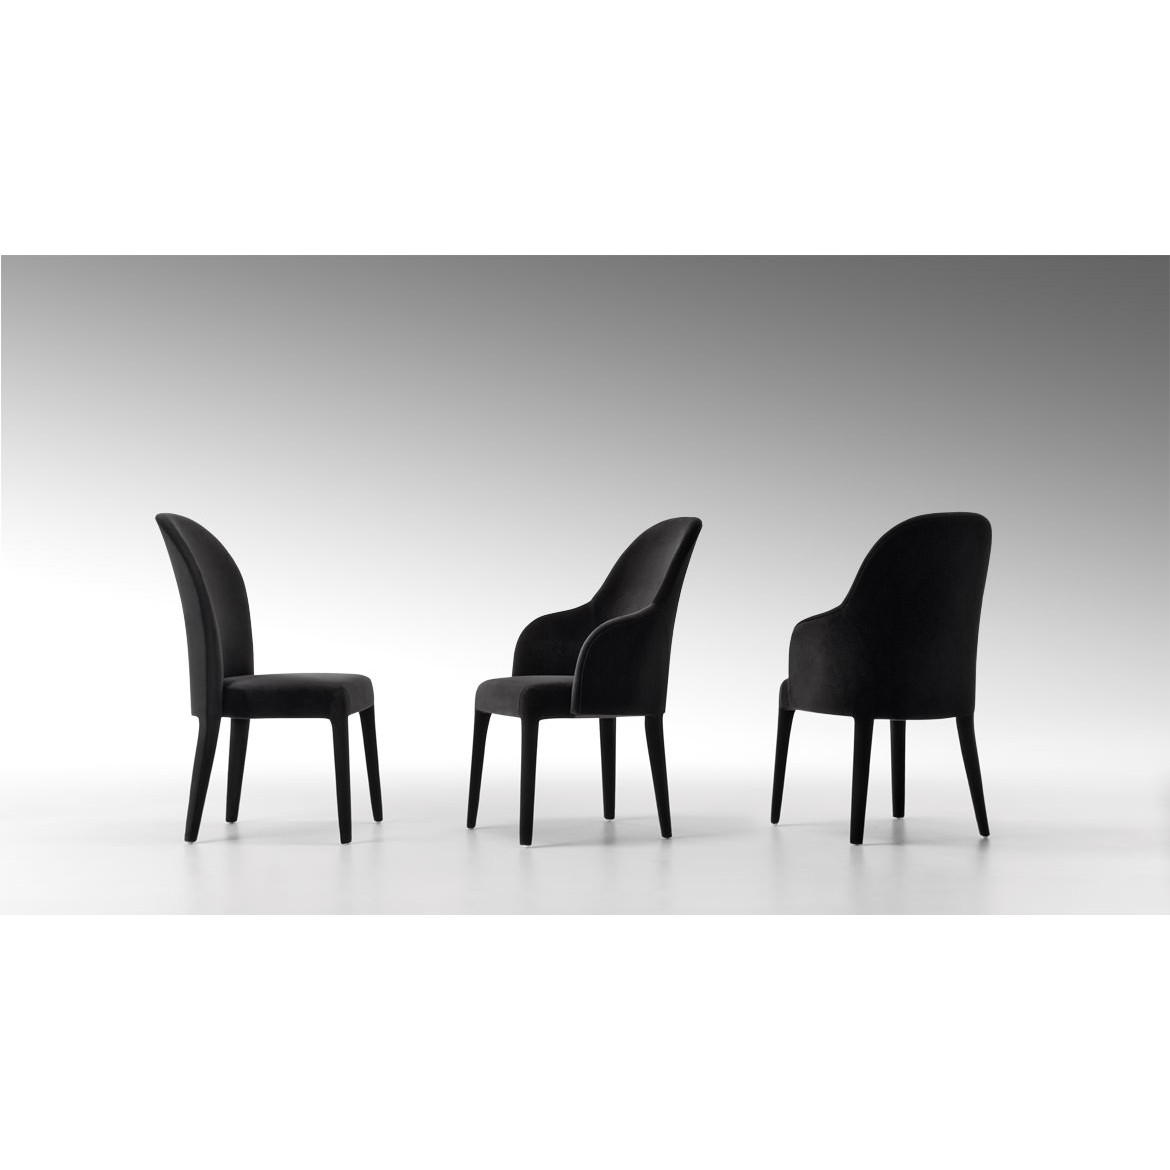 Стул Audrey Chairs, дизайн Fendi Casa